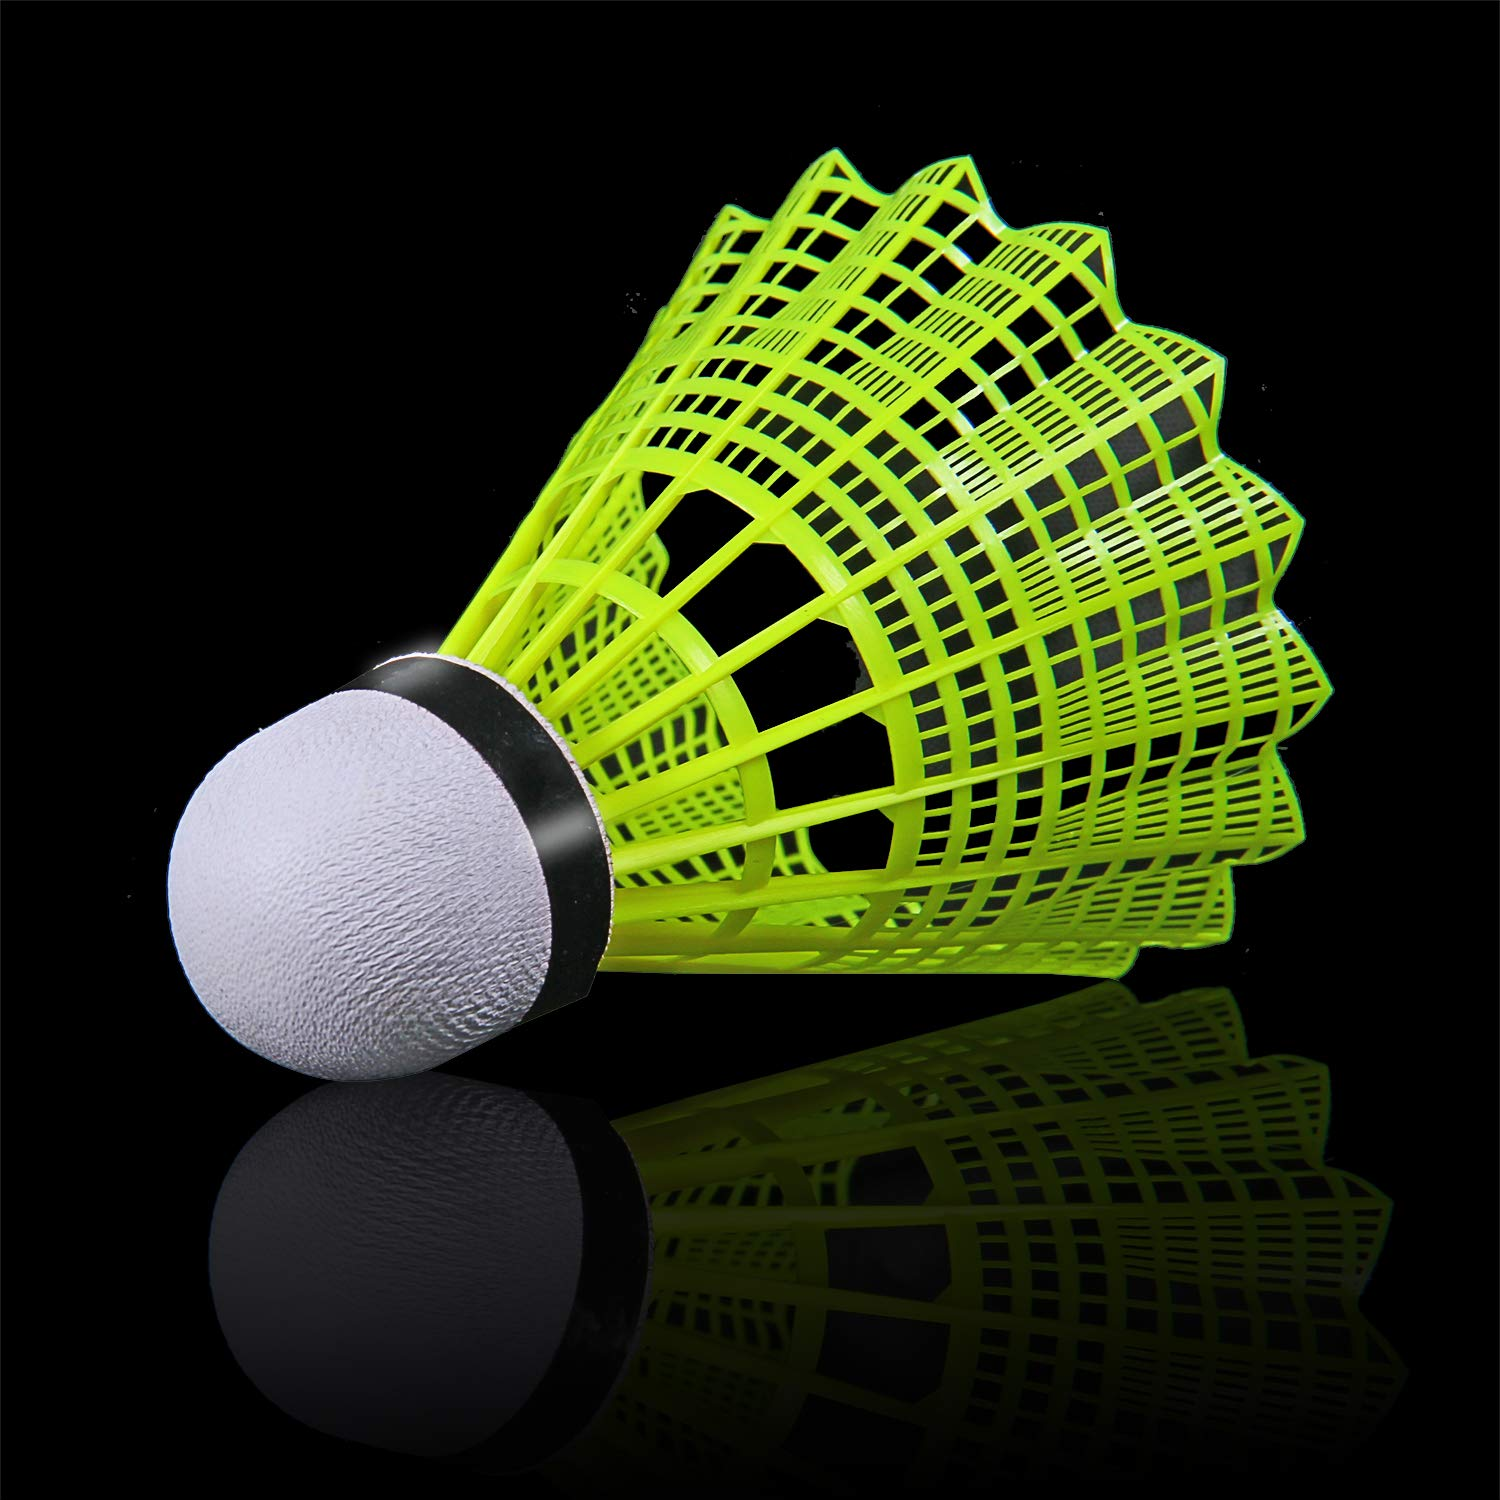 KEVENZ 12-Pack Advanced Nylon Feather Shuttlecocks,77 Grains-High Speed Badminton Balls (Yellow,Nylon) by KEVENZ (Image #2)